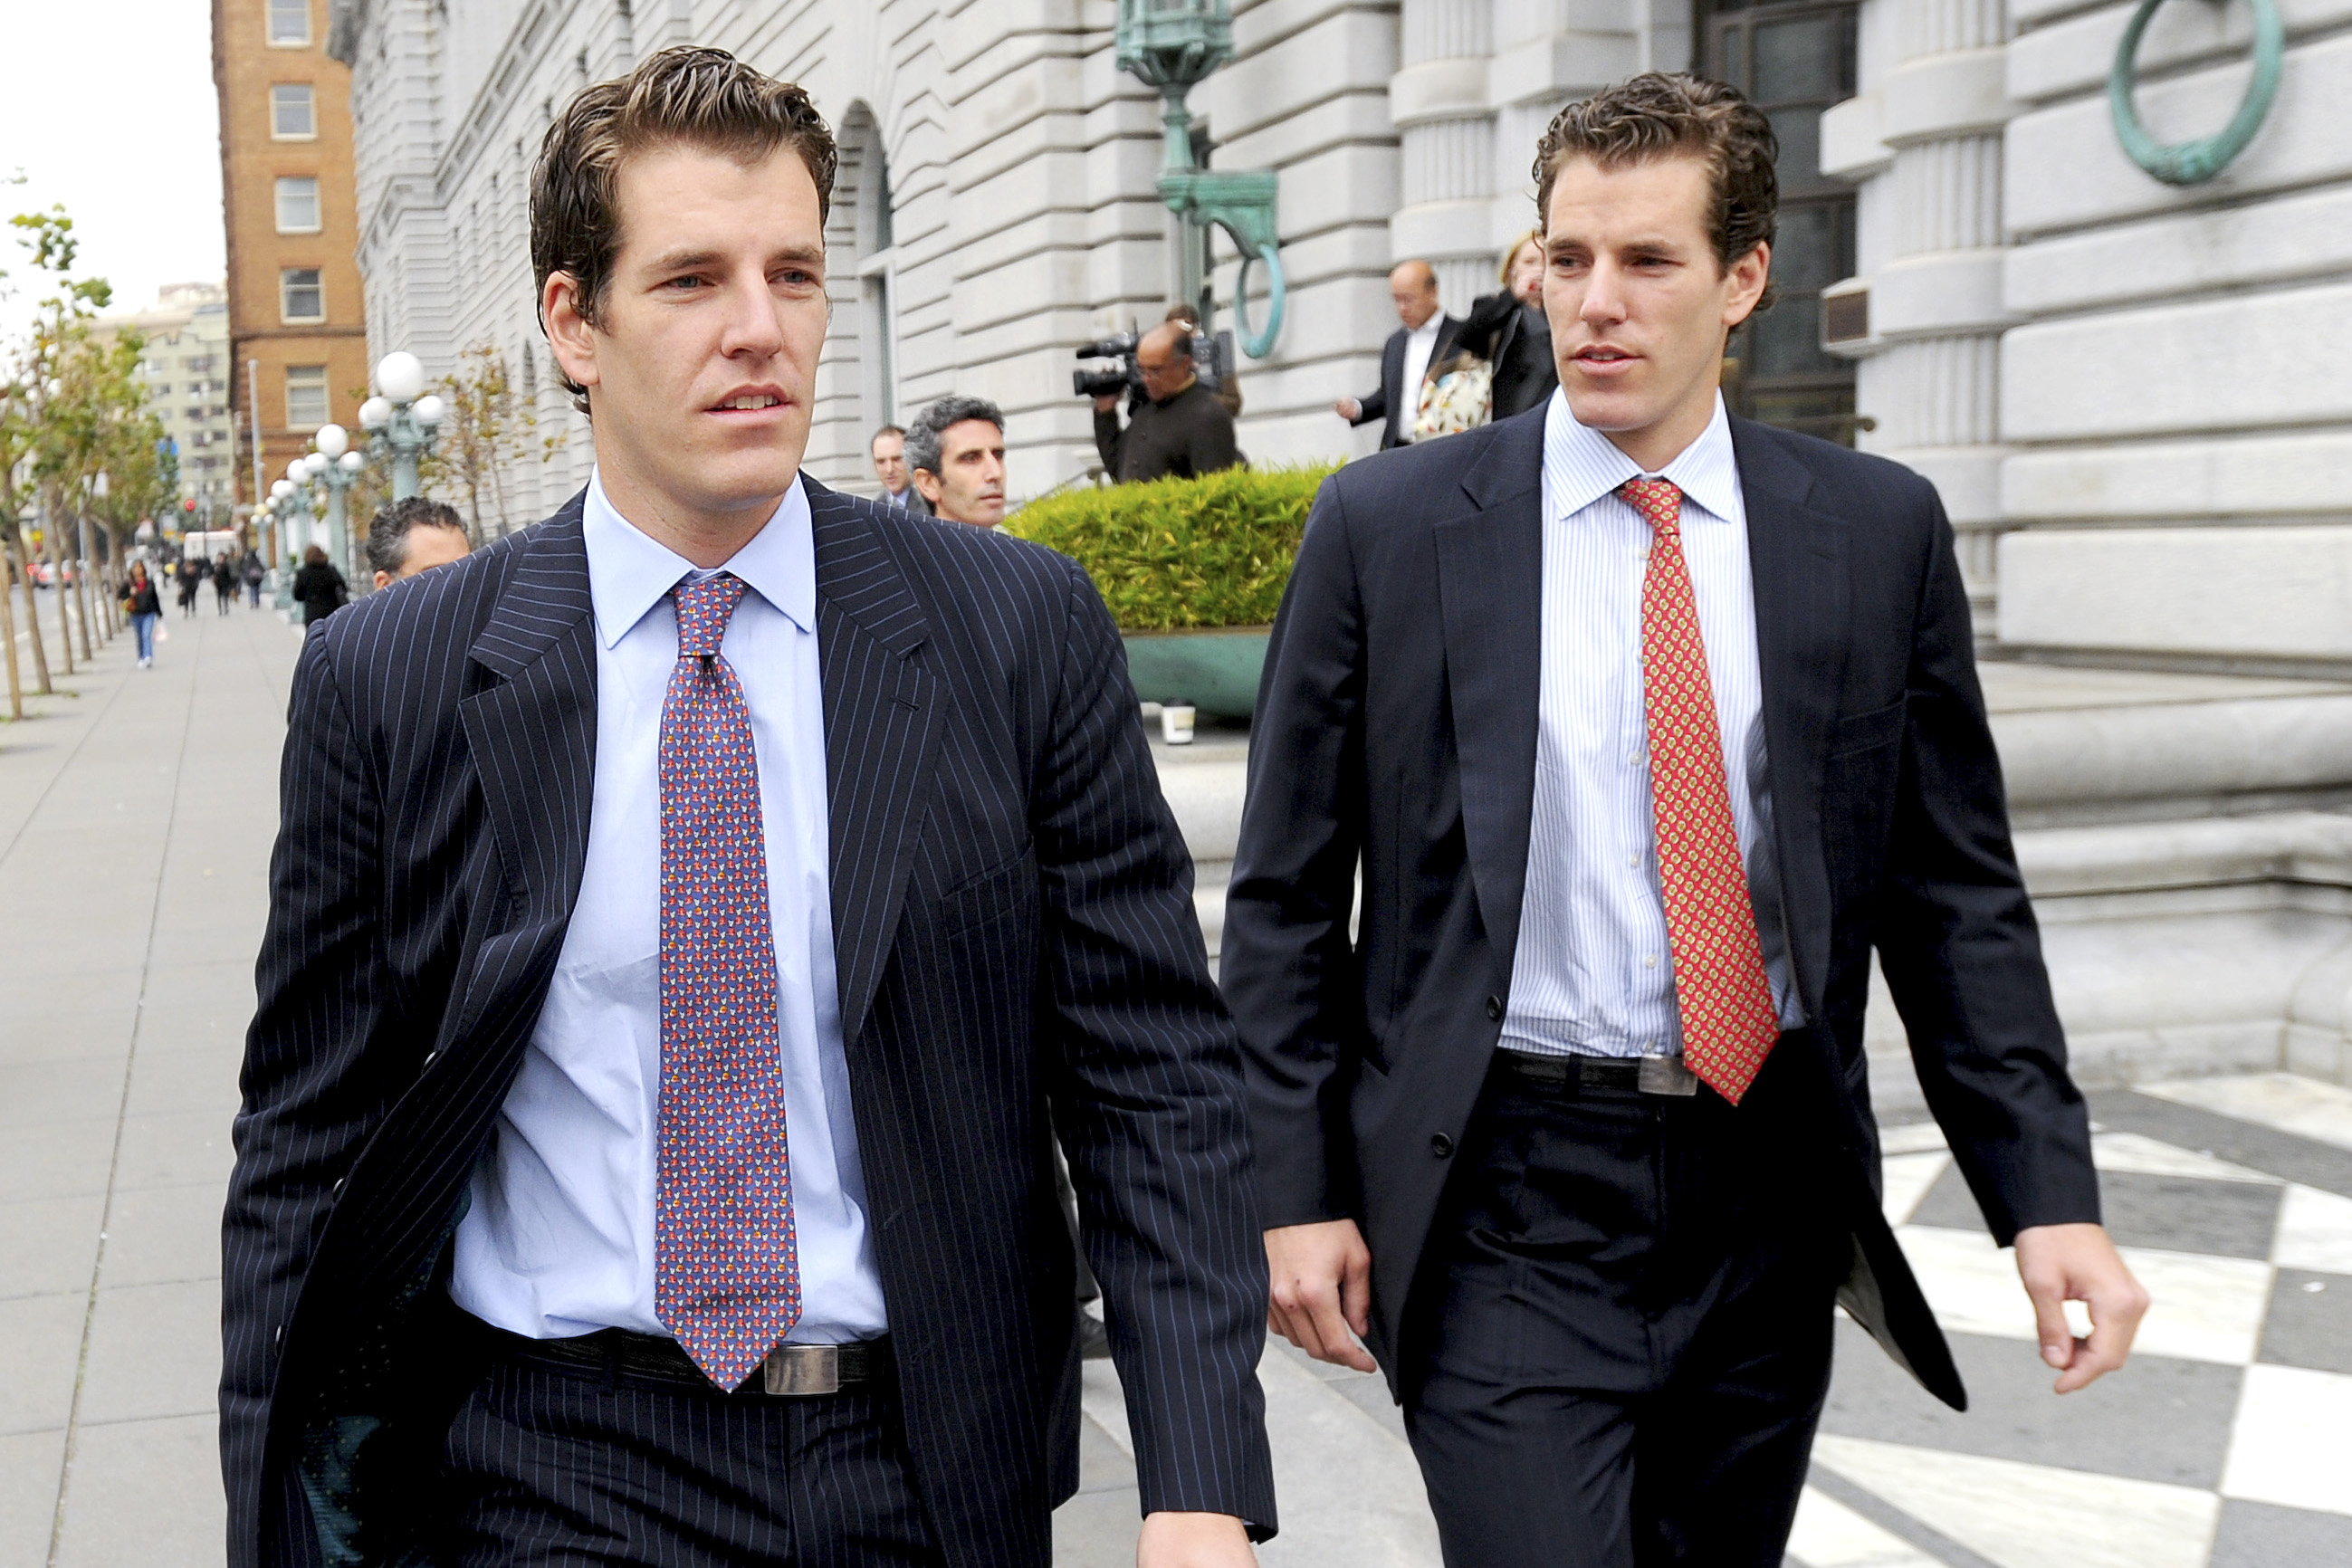 Cameron Winklevoss, right, and his twin brother Tyler leave a federal appeals court in San Francisco, California, U.S., on Tuesday, Jan. 11, 2011.